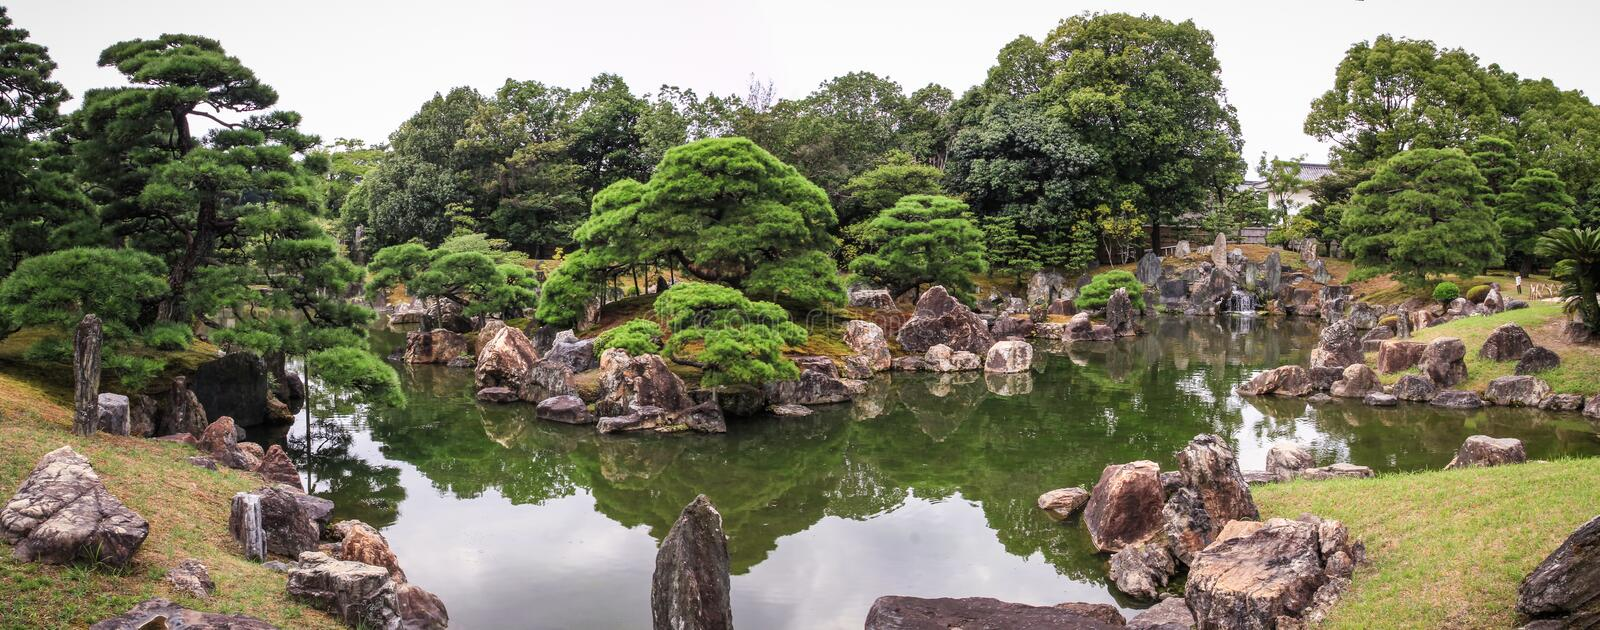 Nijo castle gardens panoramic view, kyoto, kansai, Japan. Nijō Castle is a flatland castle in Kyoto, Japan. The castle consists of two concentric rings Kuruwa royalty free stock photo